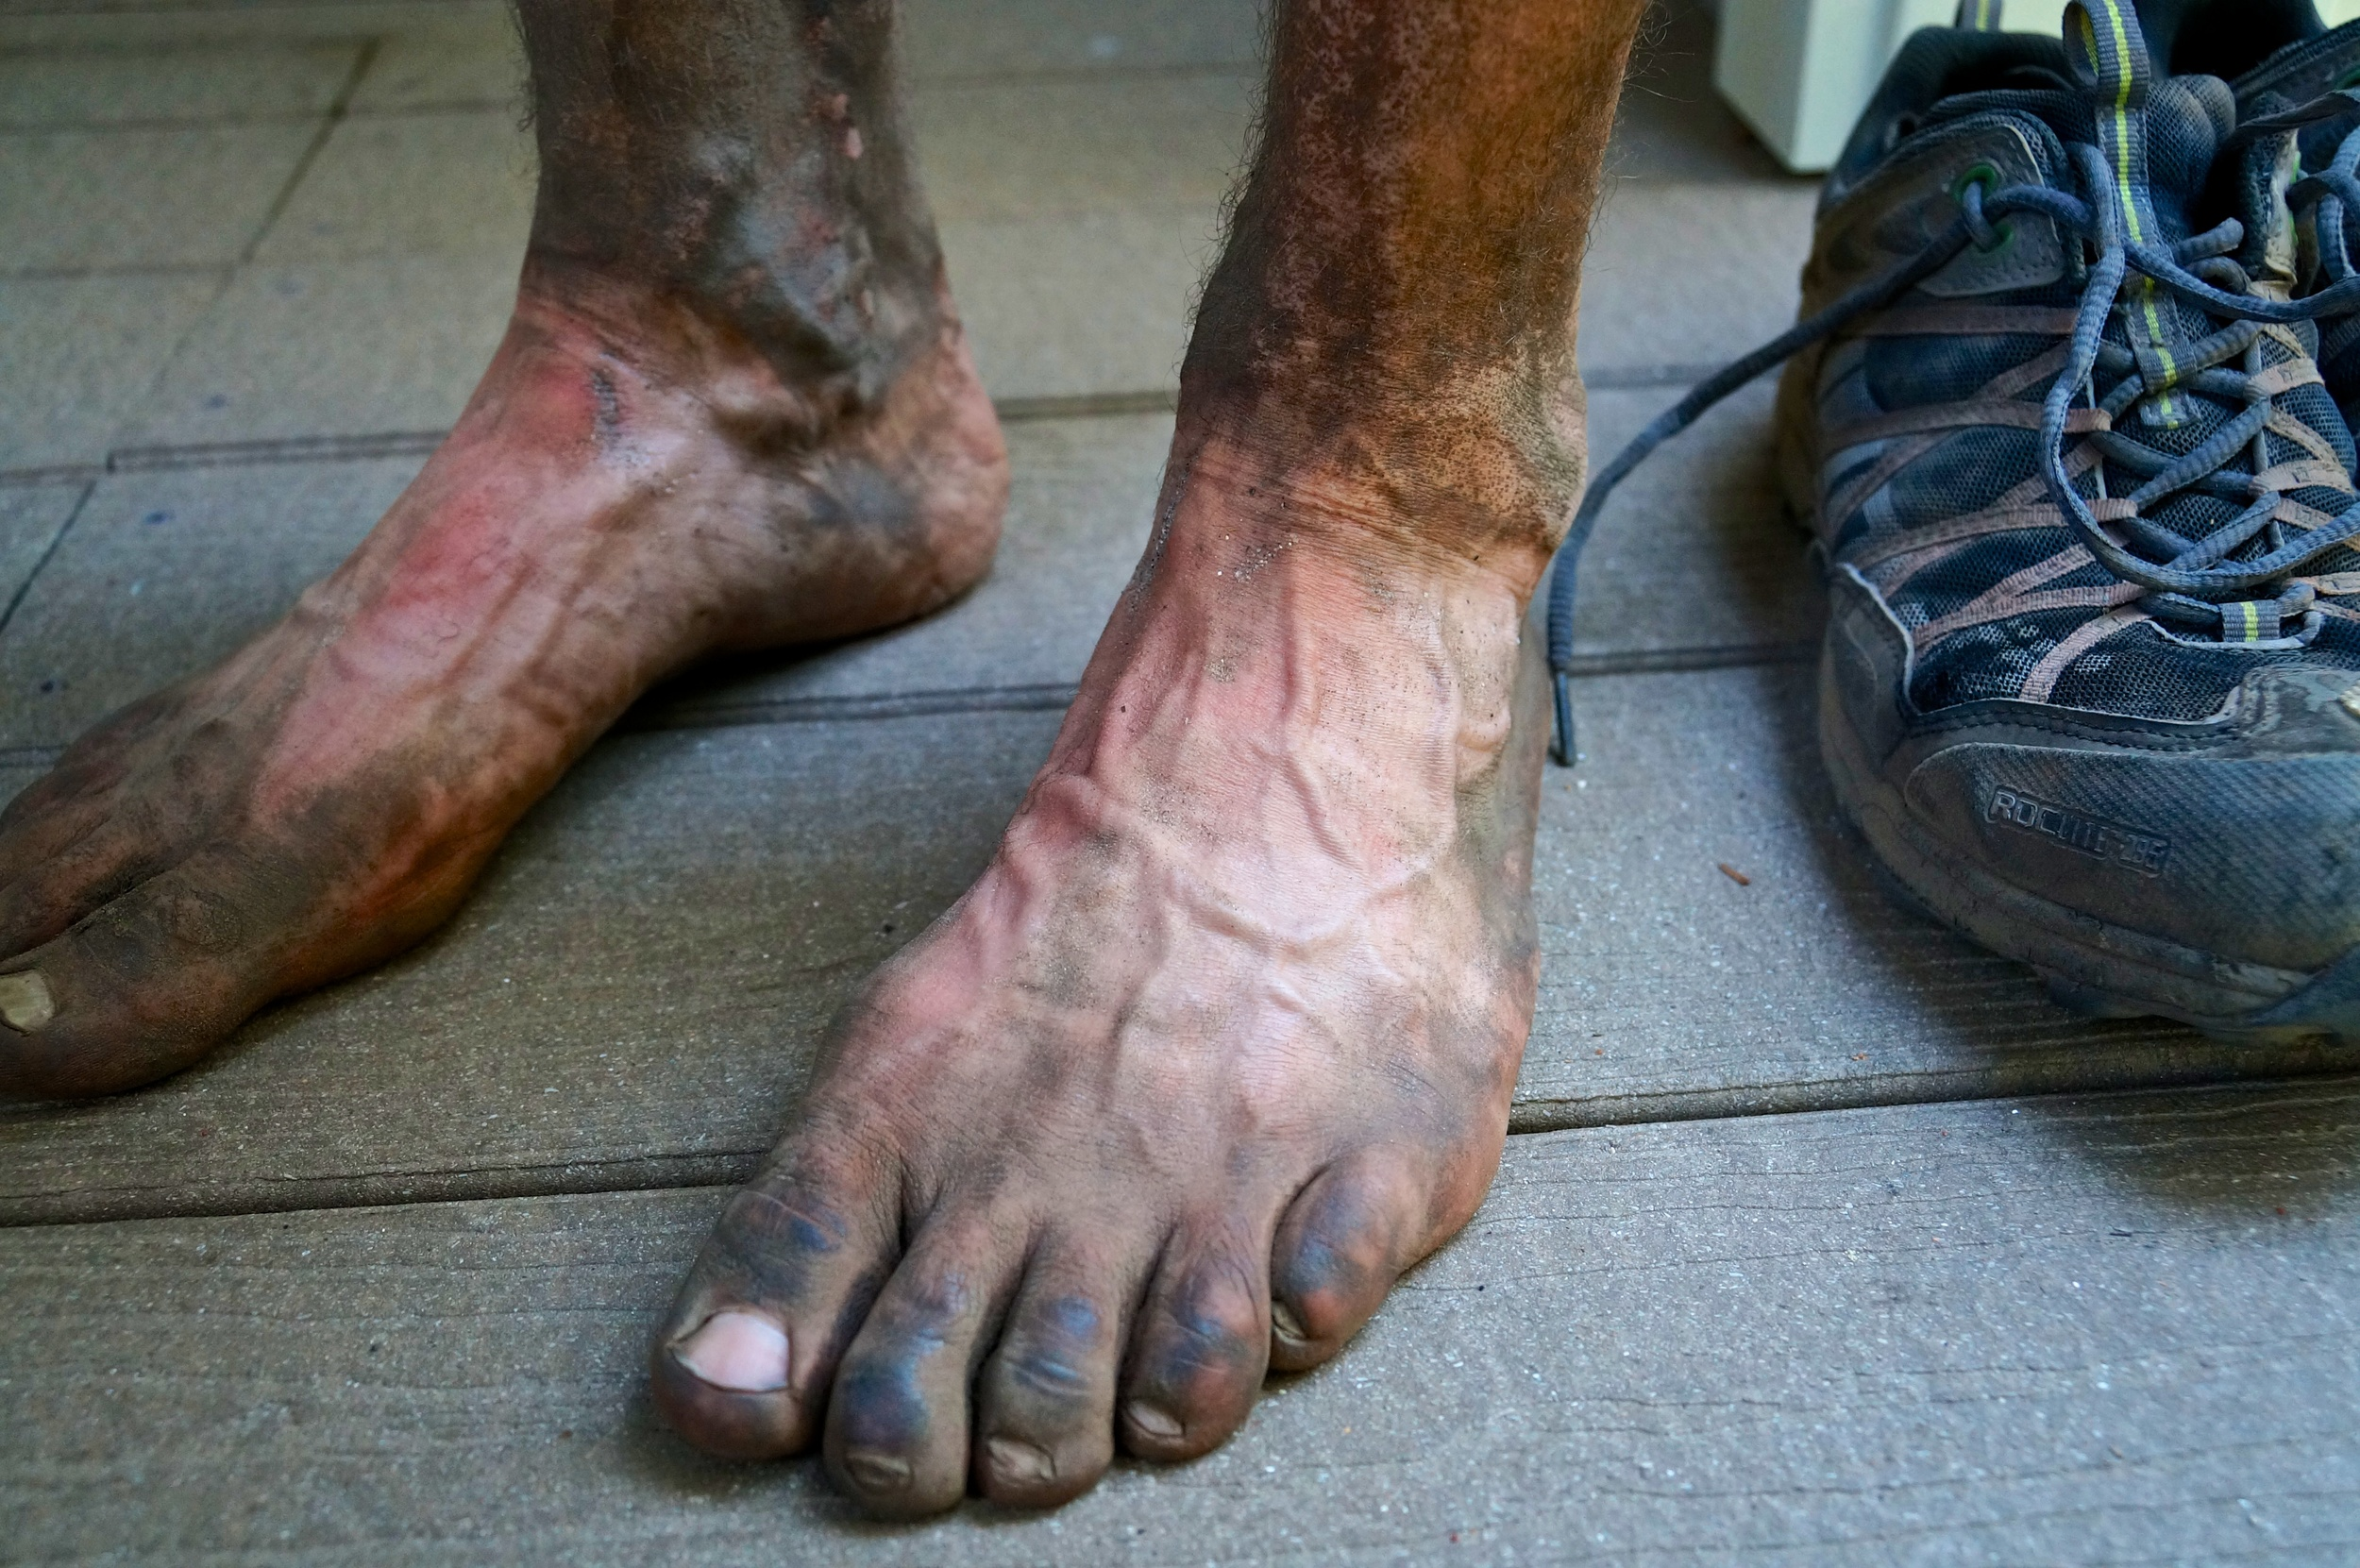 Julian's feet after many miles traveled on some great trails...